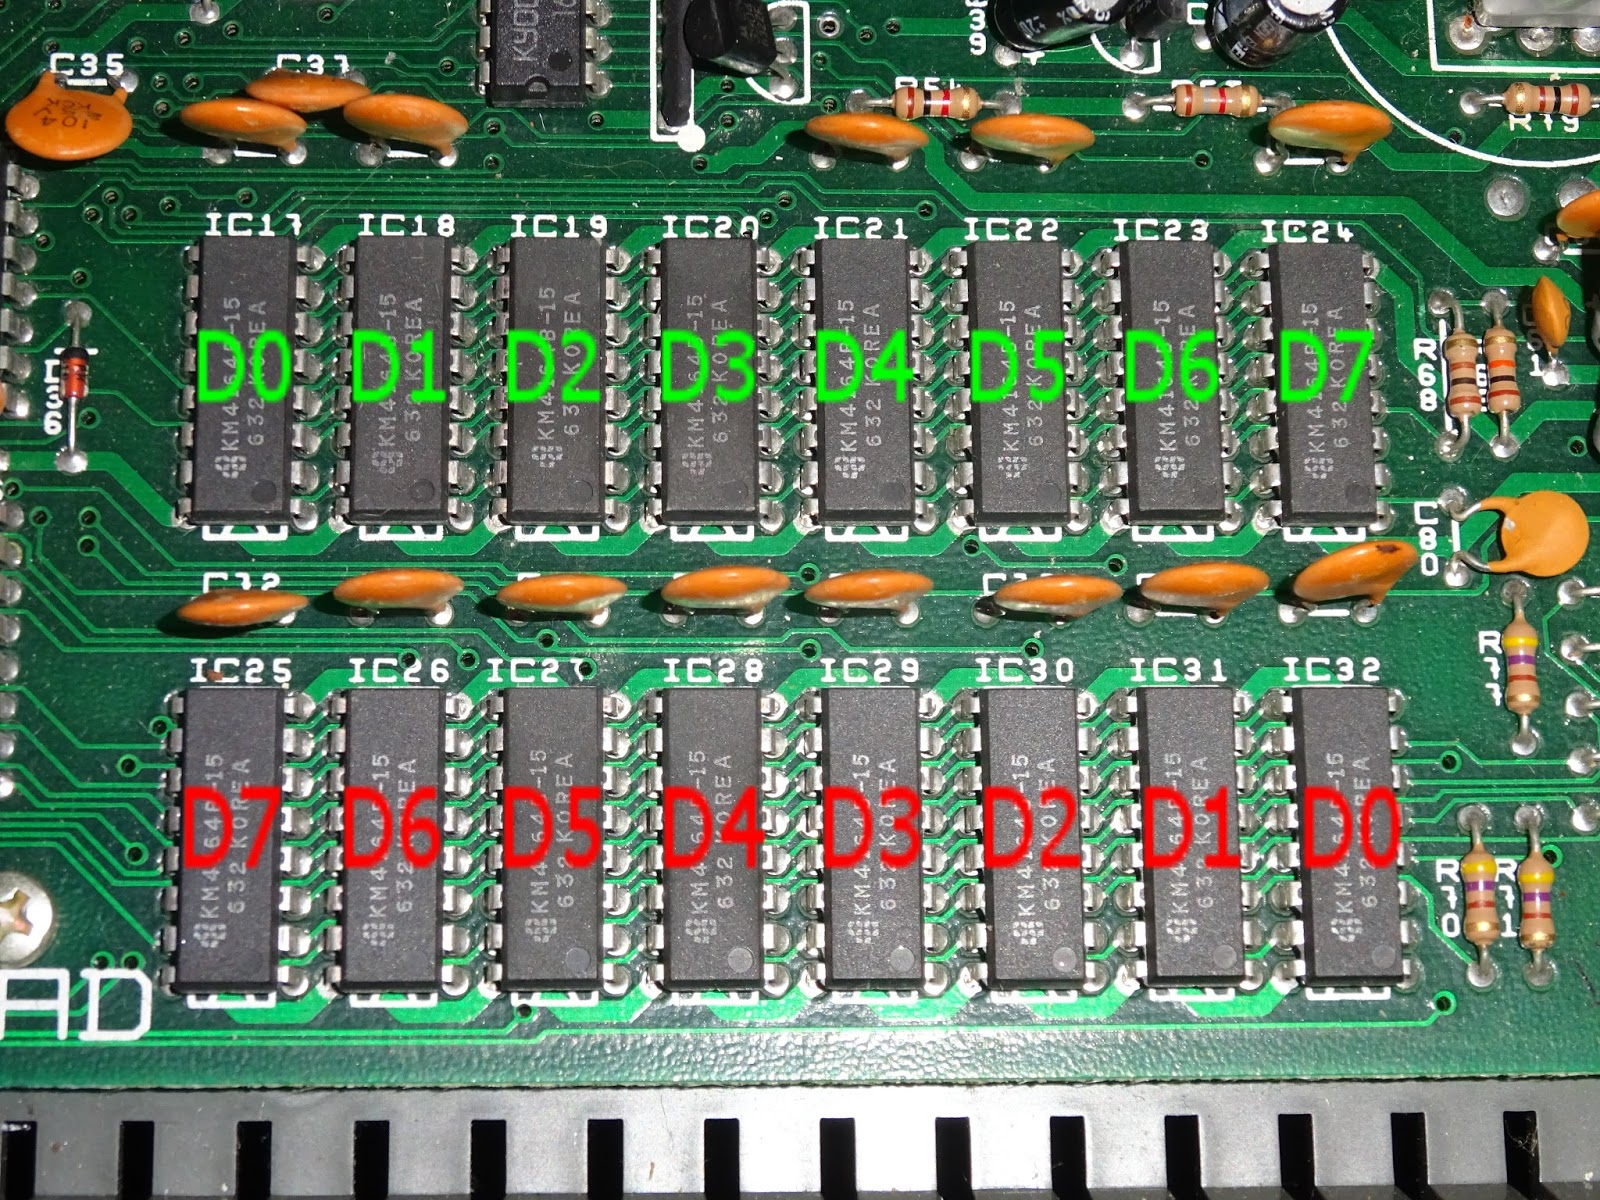 Tynemouth Software June 2017 Pal Colour Encoder Tea2000 This Is Some Glue Logic For The Bank Switching Etc Can Be Replaced By A Gal16v8 Style Chip Such As An Atf16v8 With Appropriate Programming